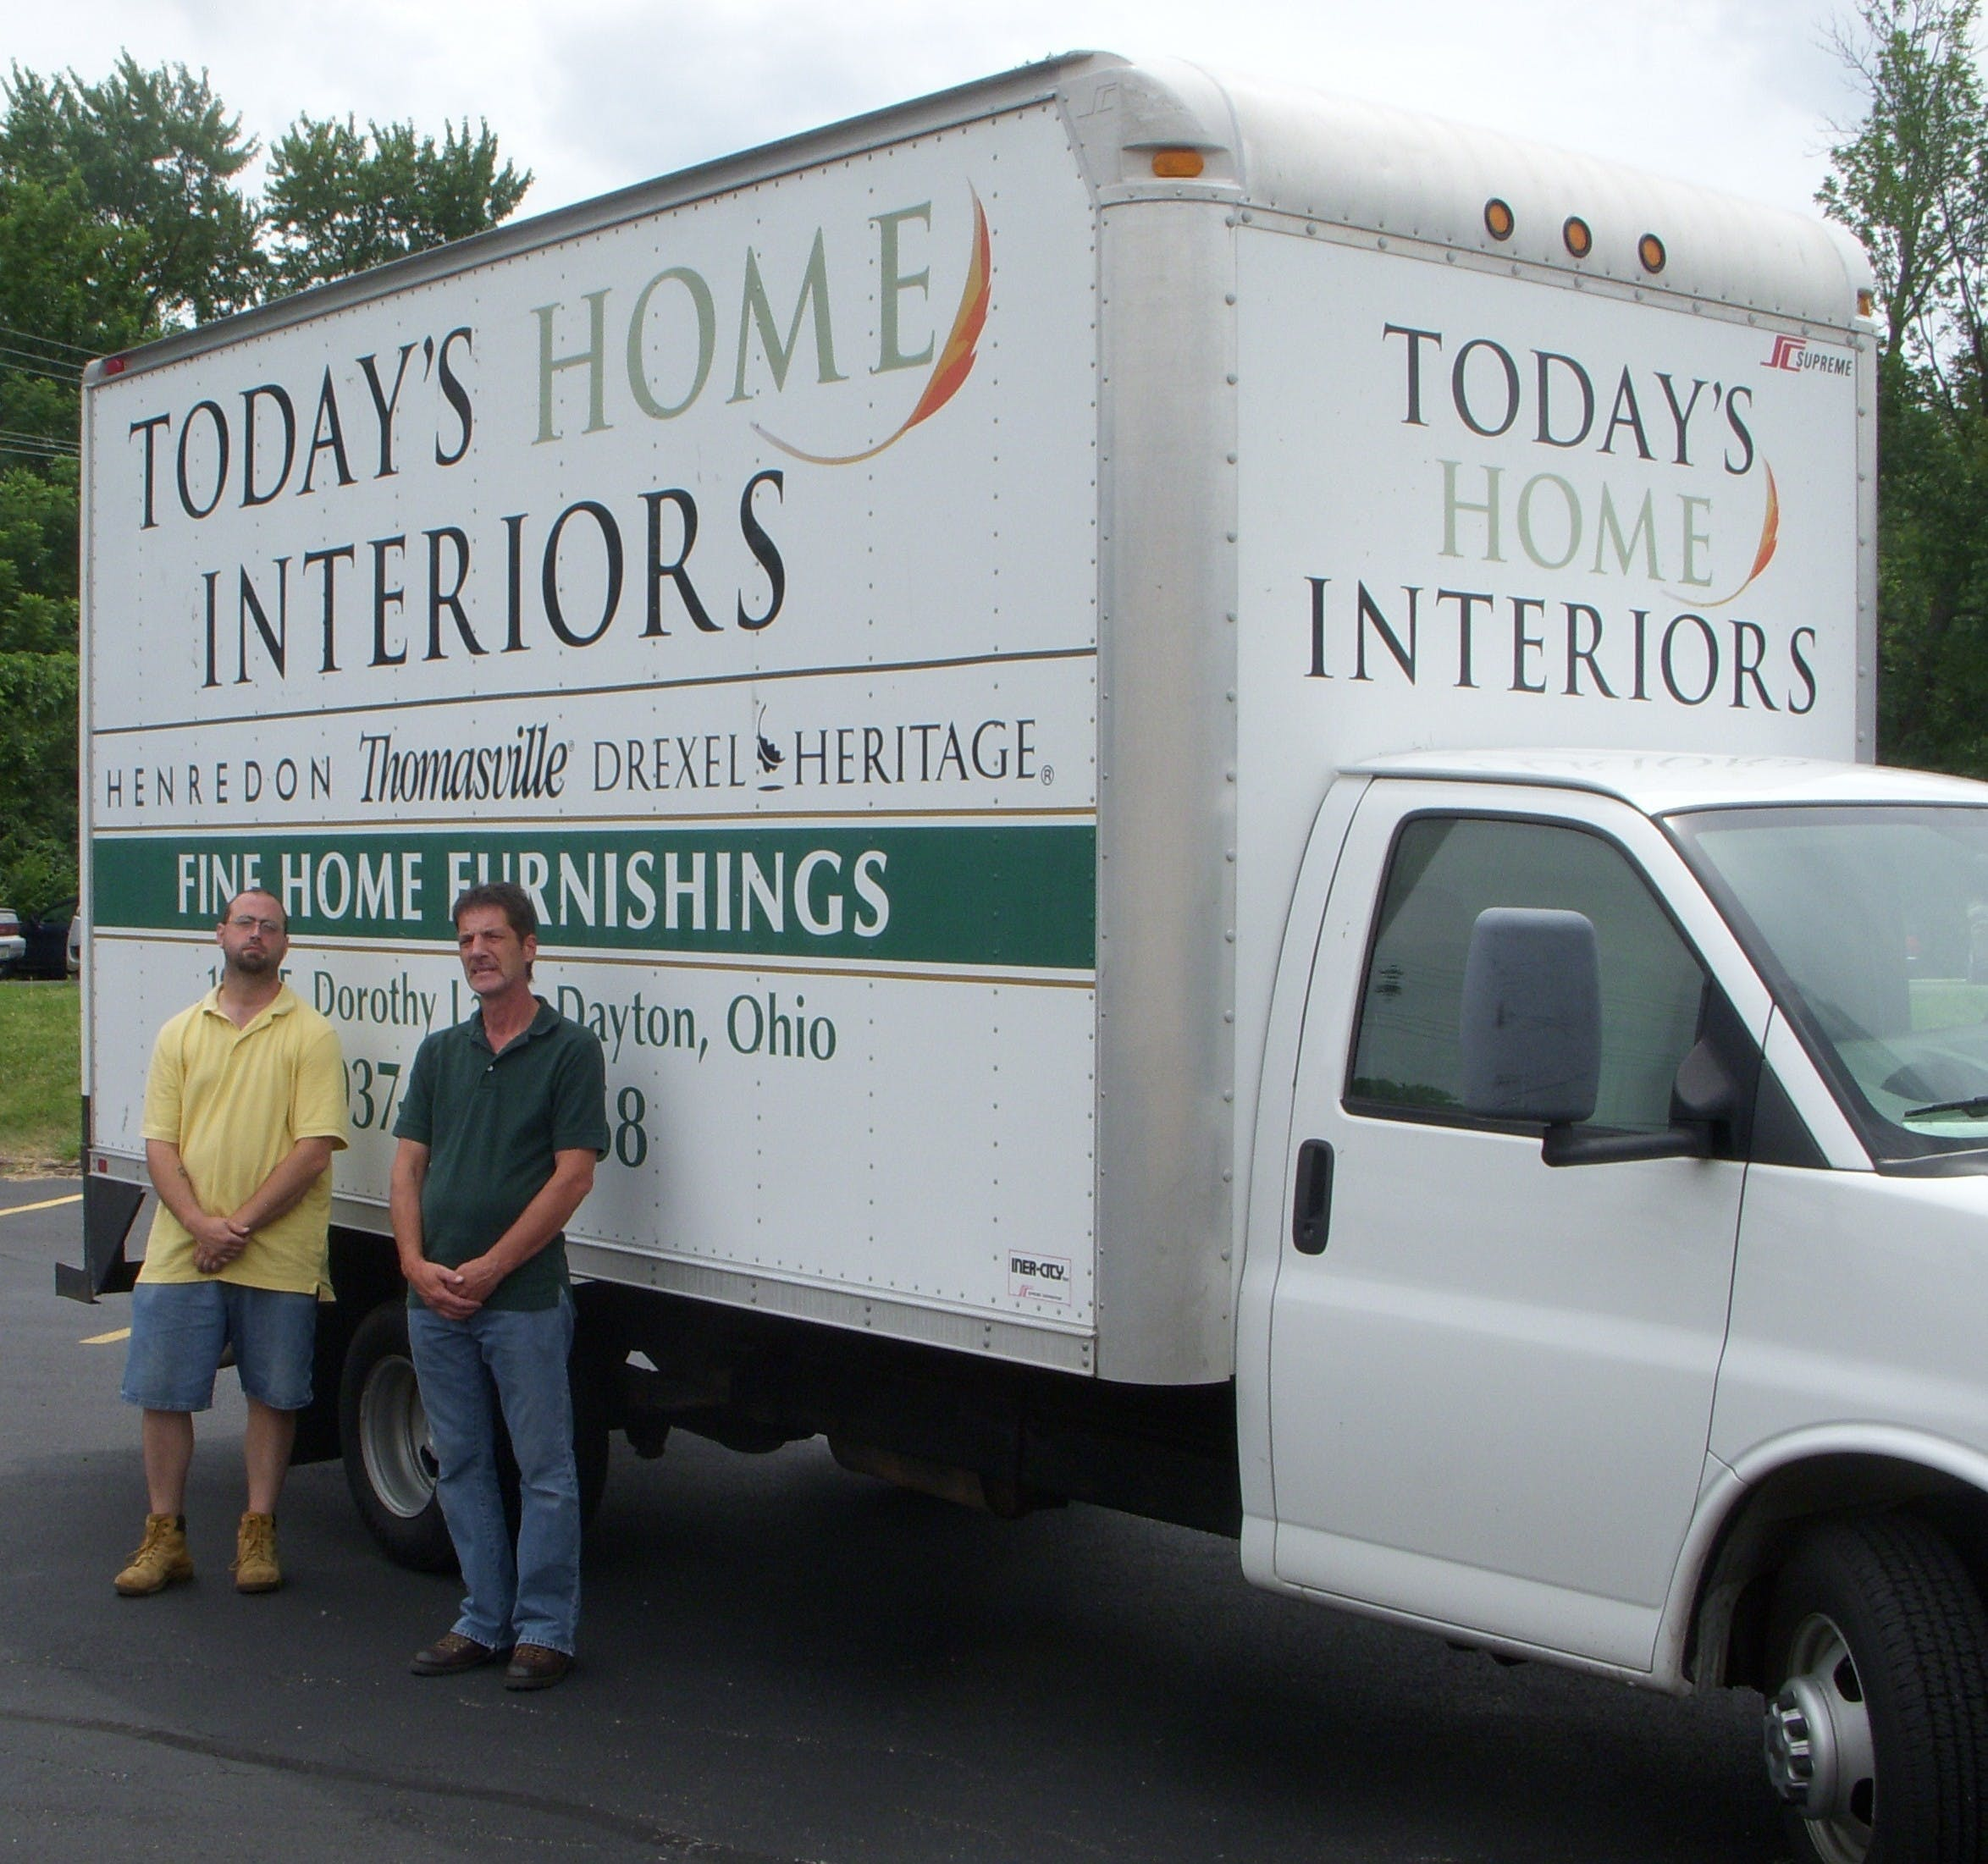 delivery team Interior Design Services  Dayton Today s Home